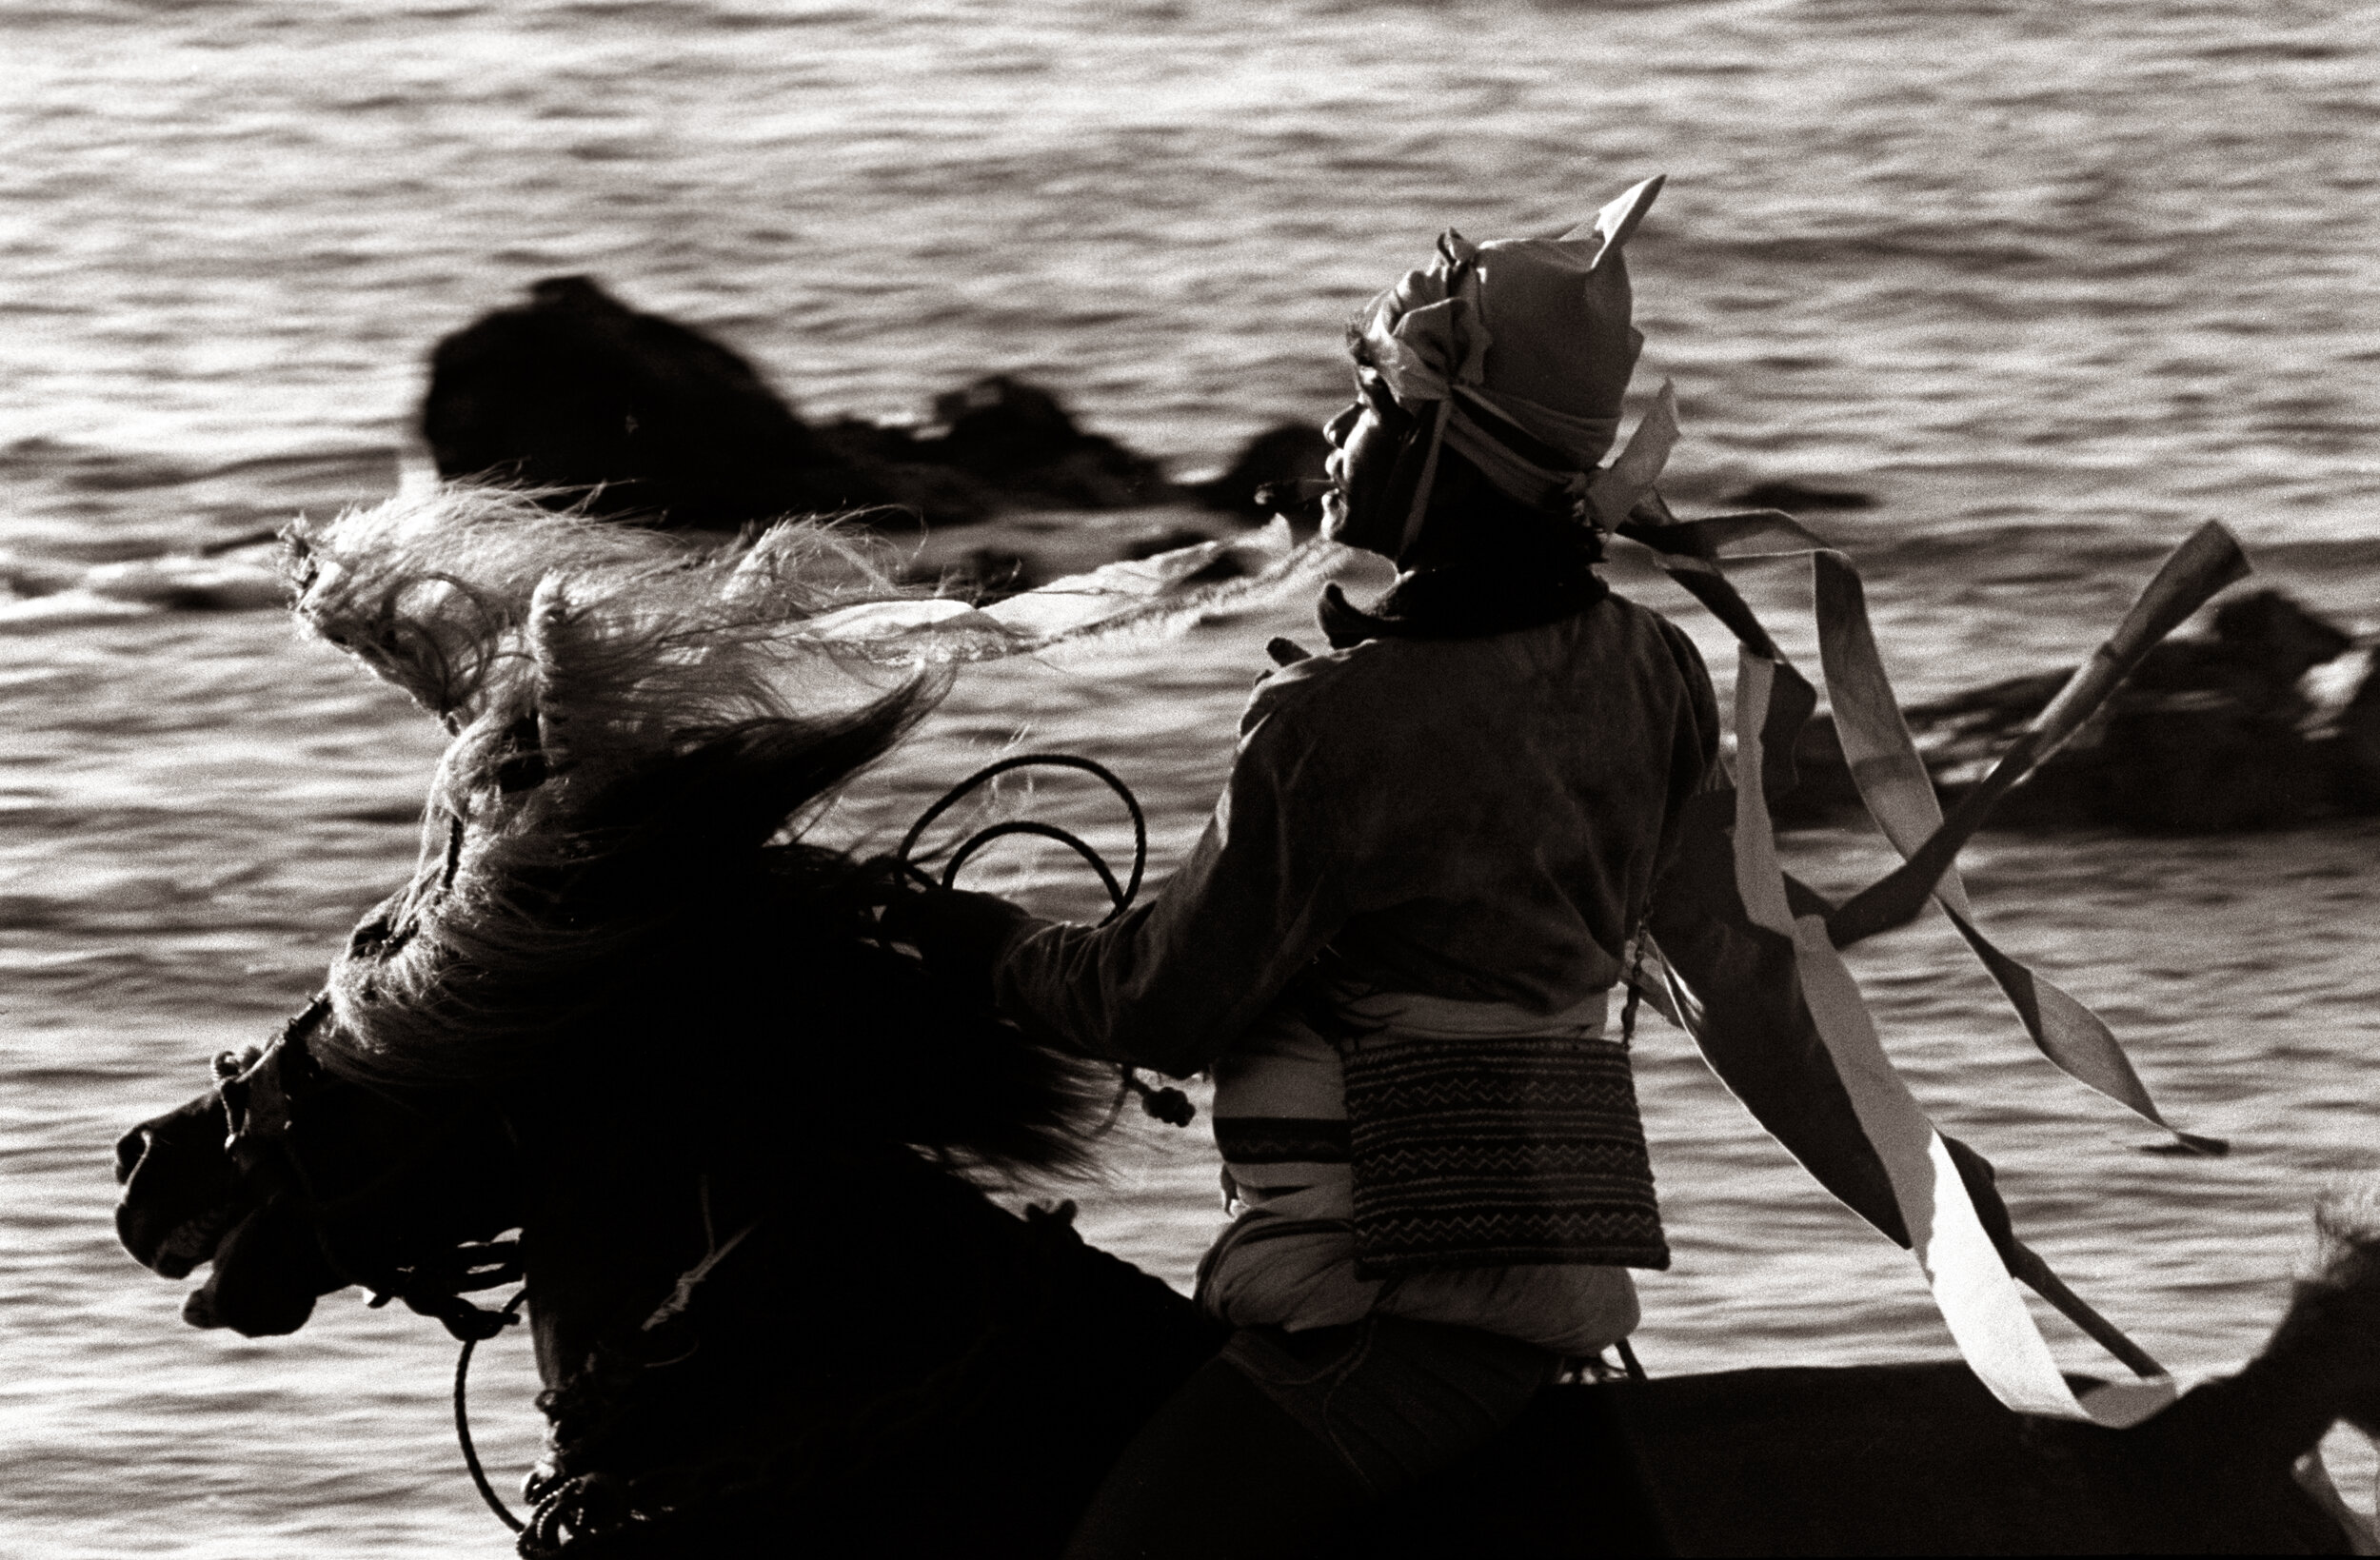 The rider designated to open the Pasola ritual battle on horseback in Wanokaka, West Sumba, rides across the beach, before the whole battle gets moved inland. © Rio Helmi